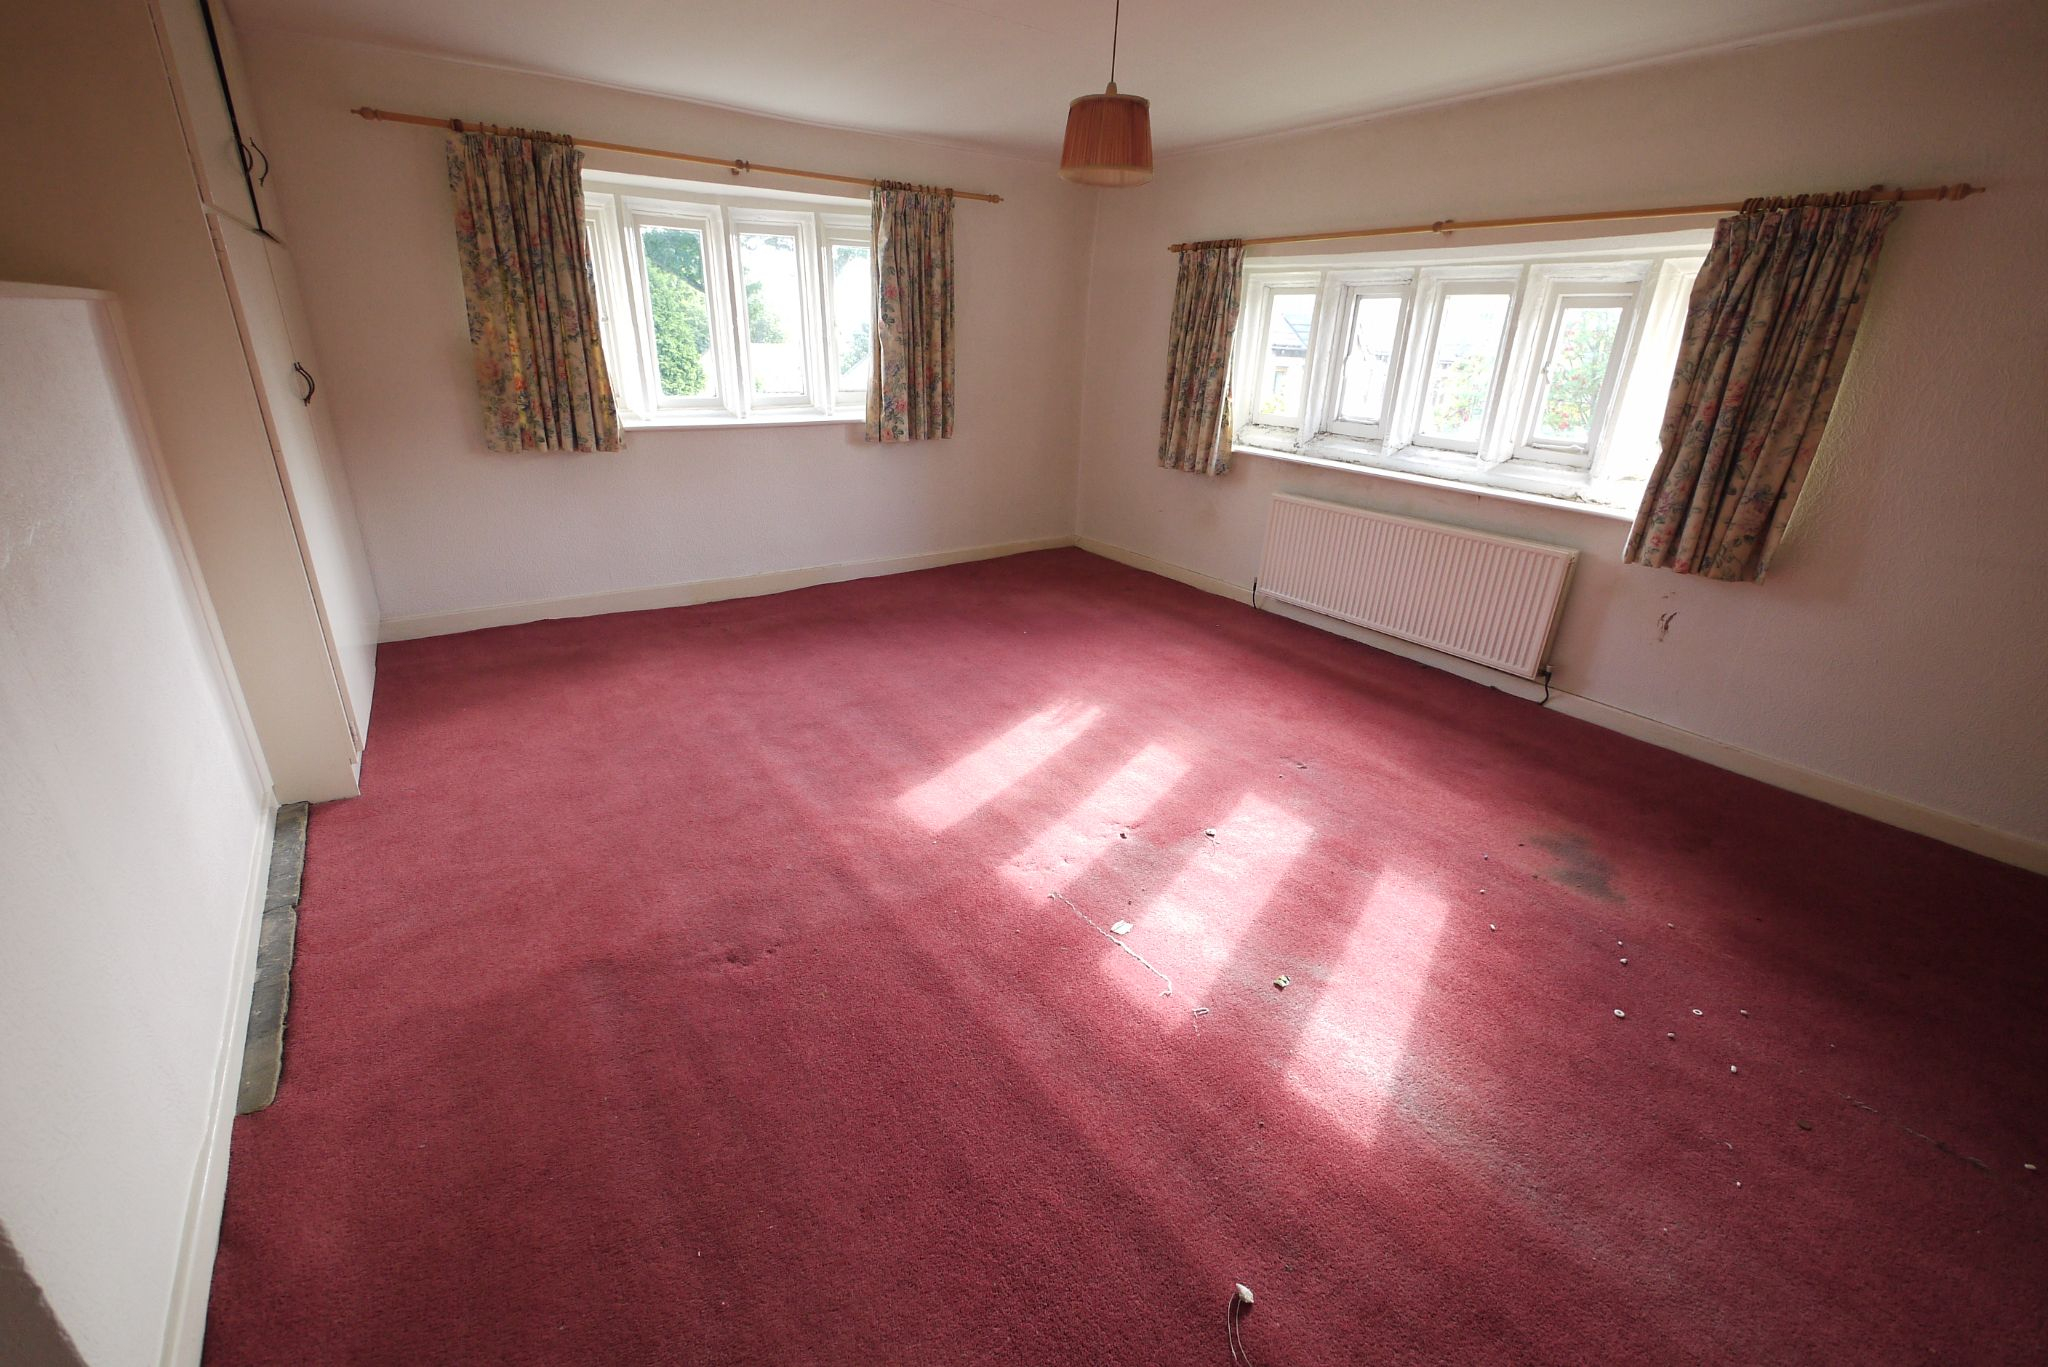 3 bedroom cottage house SSTC in Brighouse - Photograph 8.